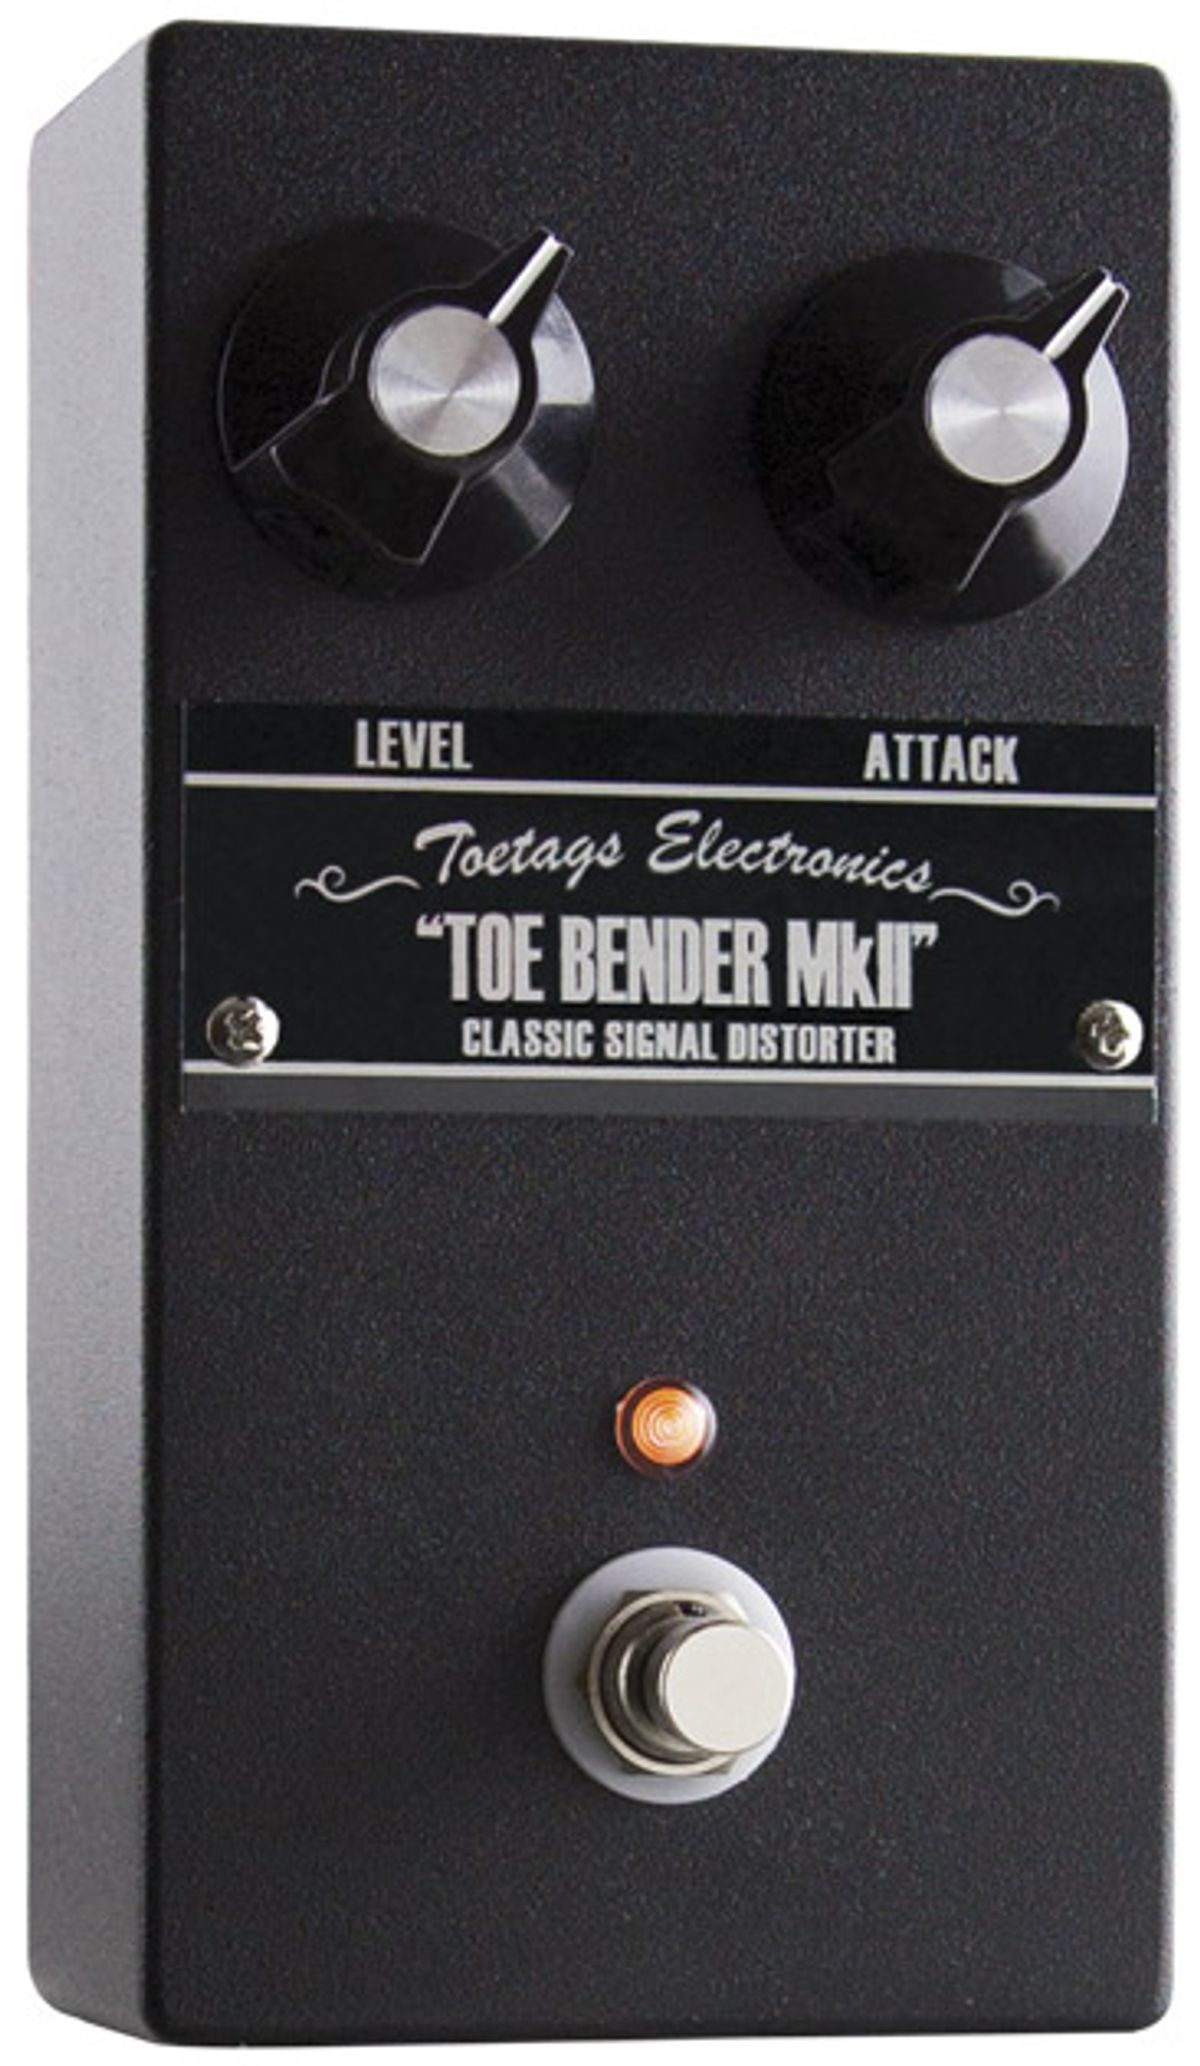 Toetags Electronics Toe Bender MkII Review